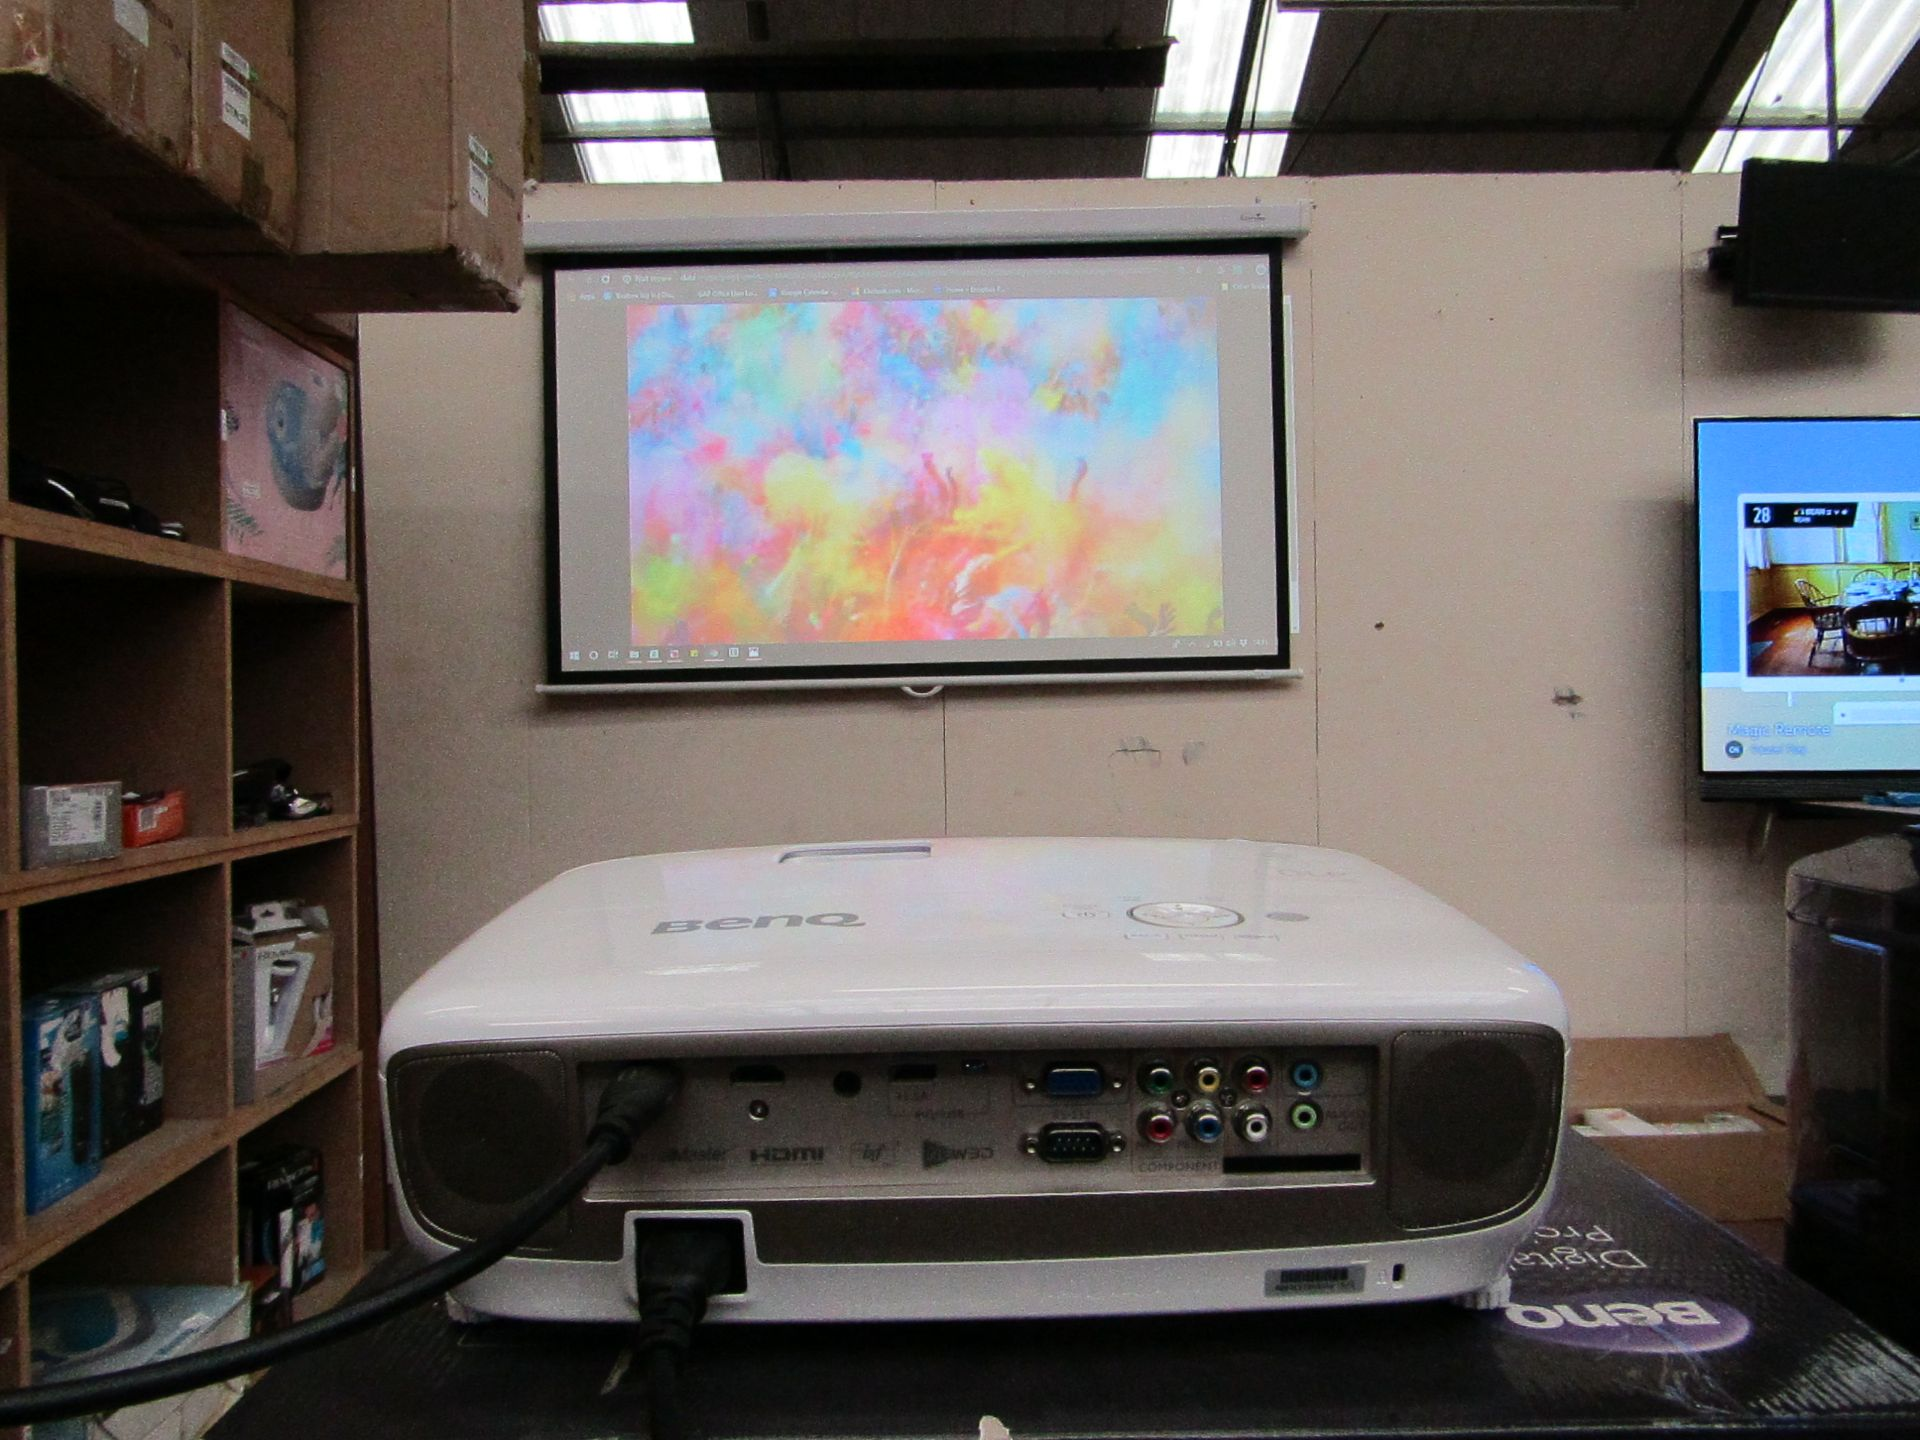 Lot 92 - Ready to go cinema set! Features: Benq 3D Ready DLP Projector 1080p HD Ready £669.00, with remote